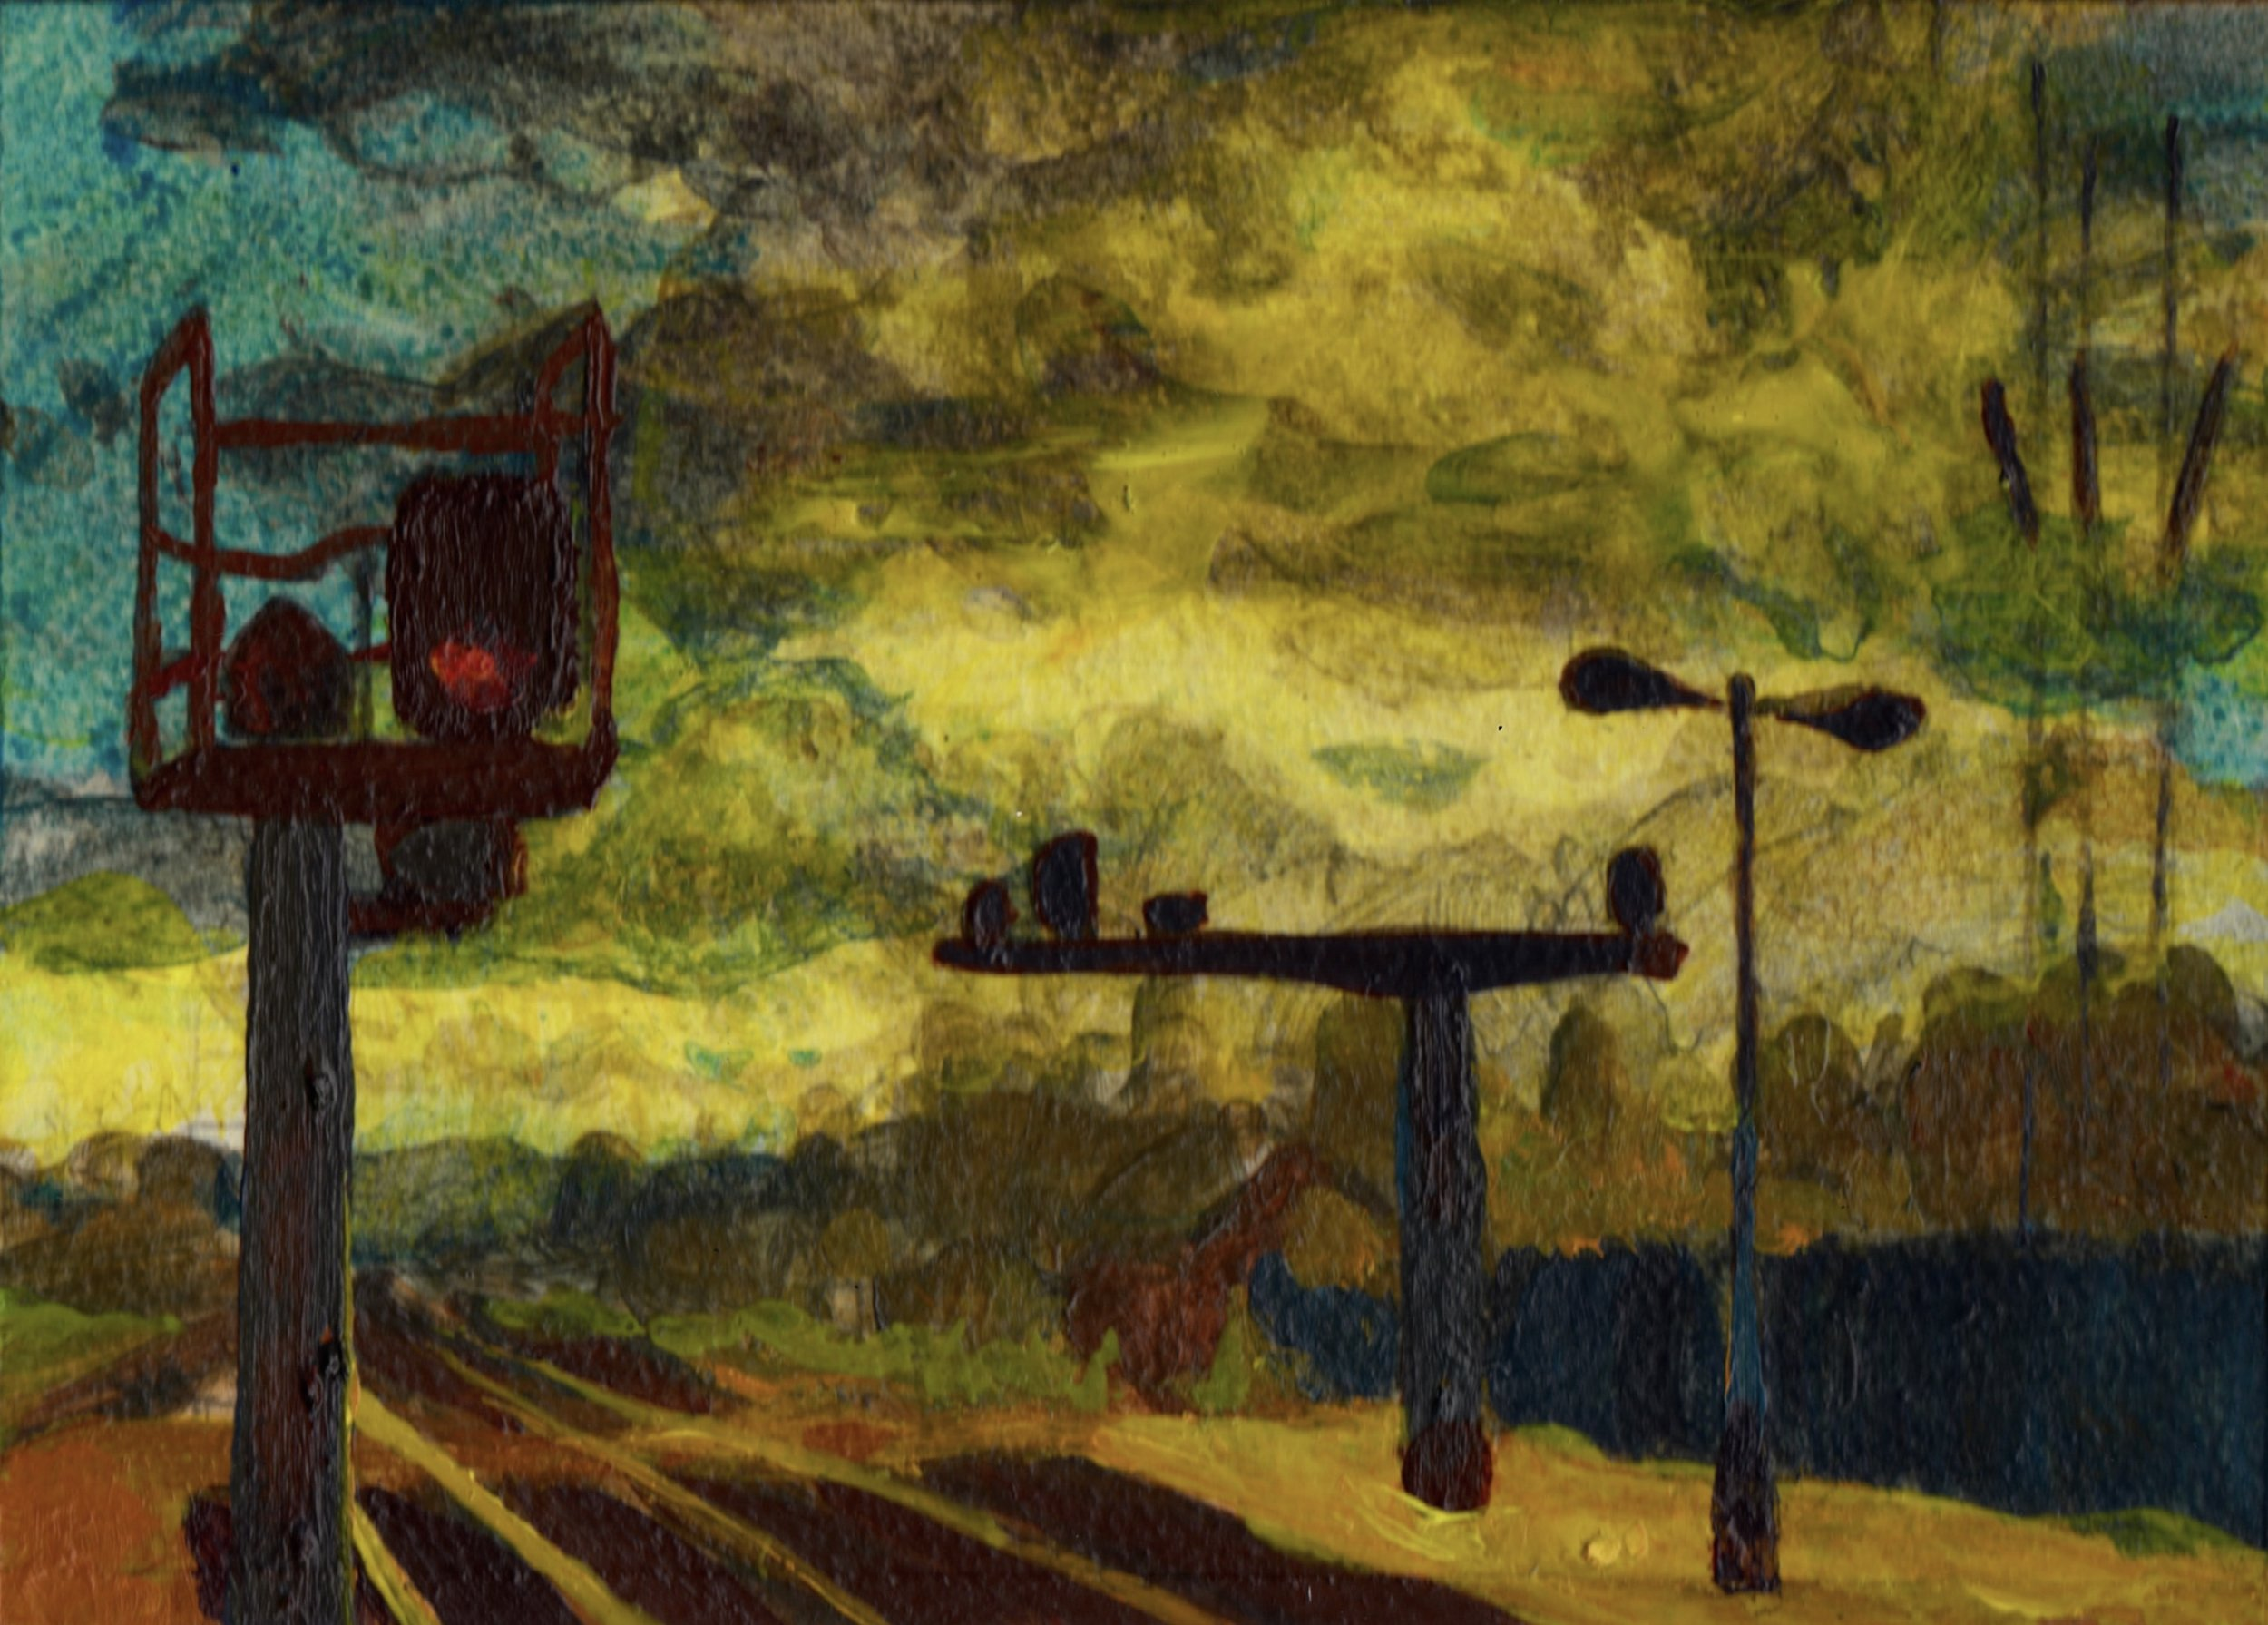 Station Painting.jpg